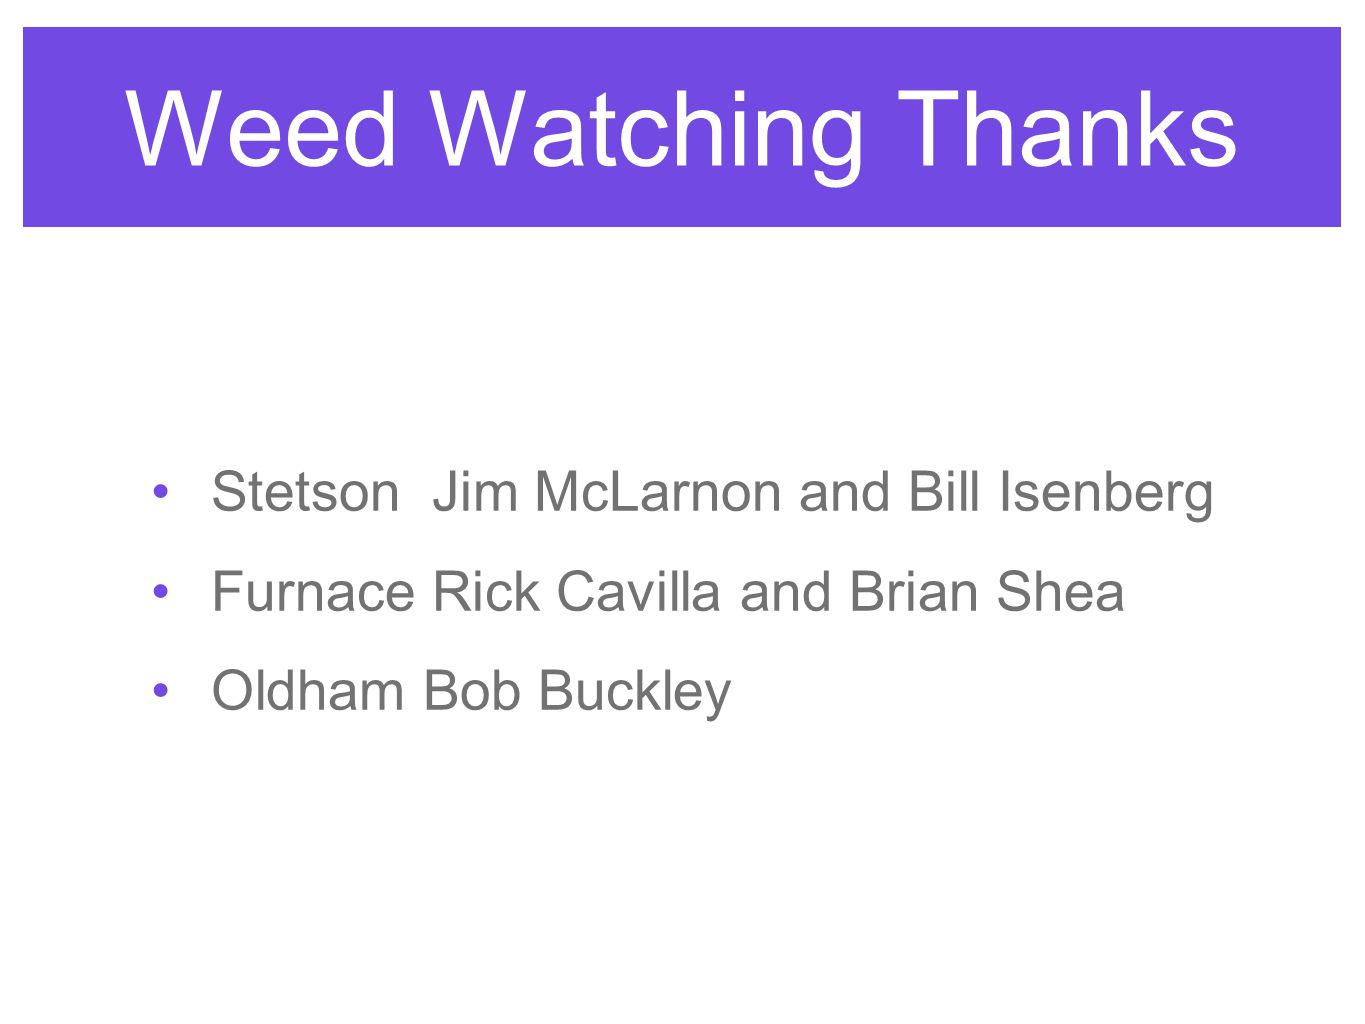 Weed Watching Thanks Stetson Jim McLarnon and Bill Isenberg Furnace Rick Cavilla and Brian Shea Oldham Bob Buckley